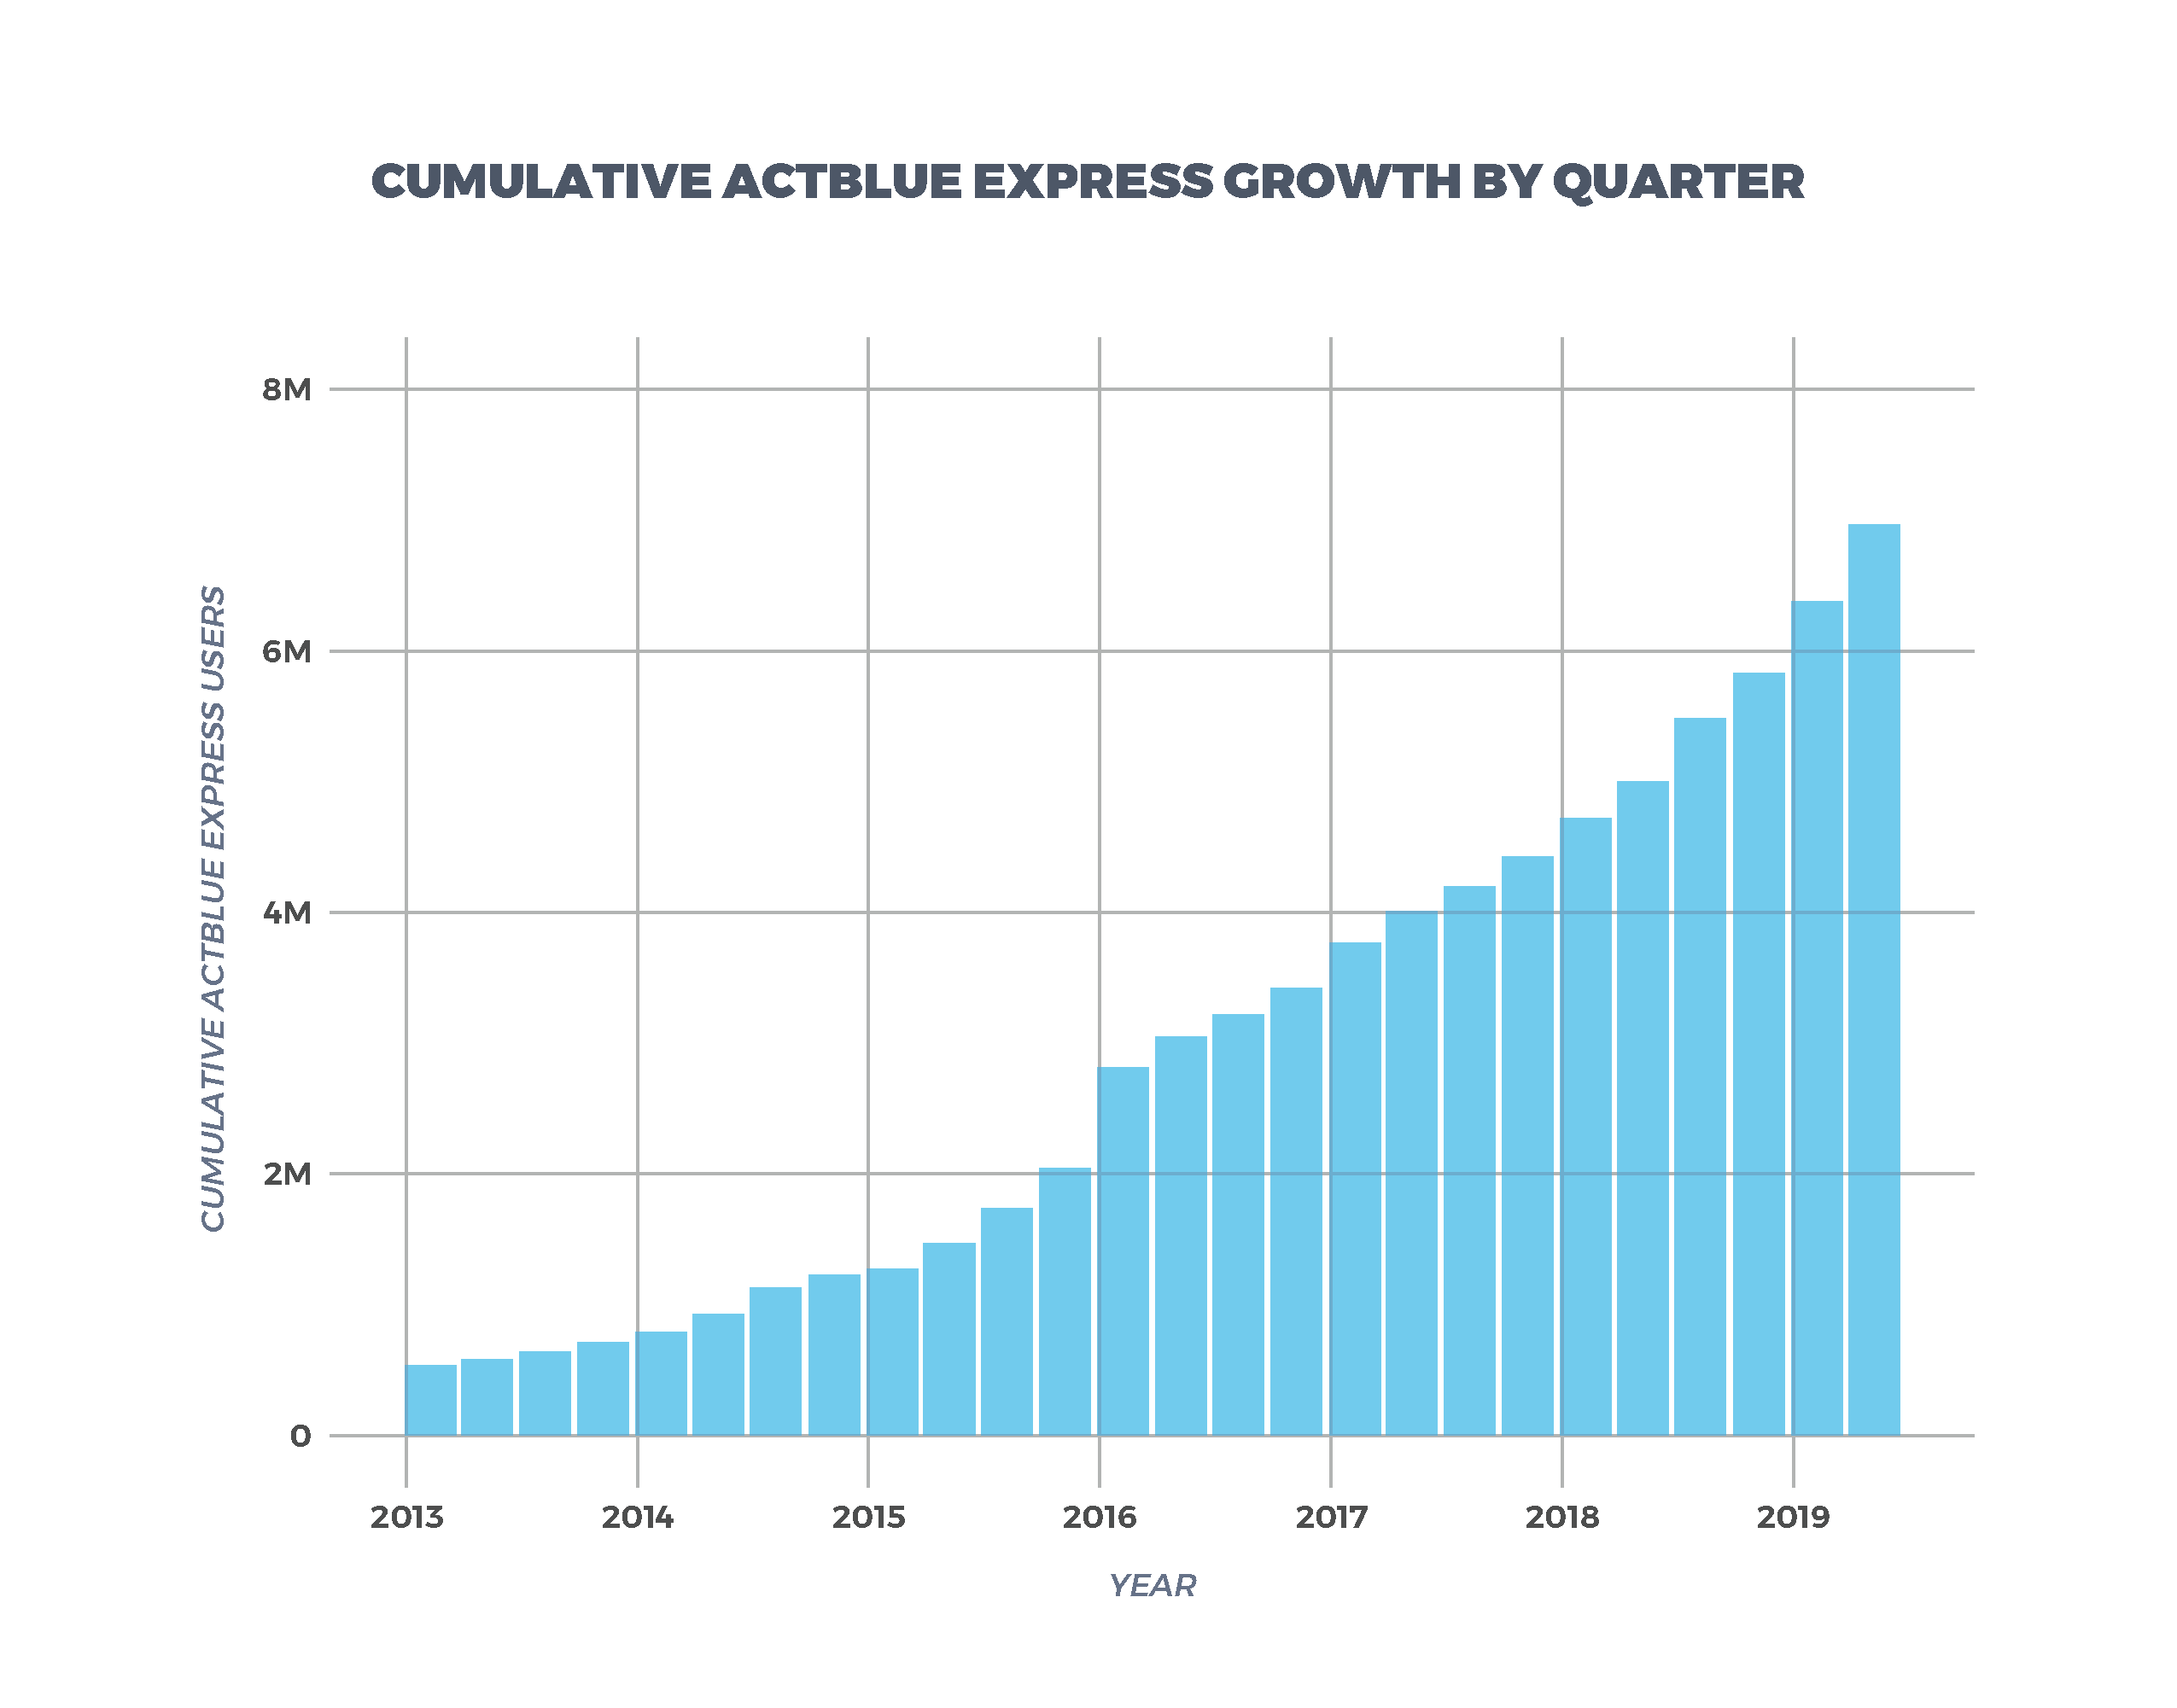 Cumulative ActBlue Express Growth By Quarter